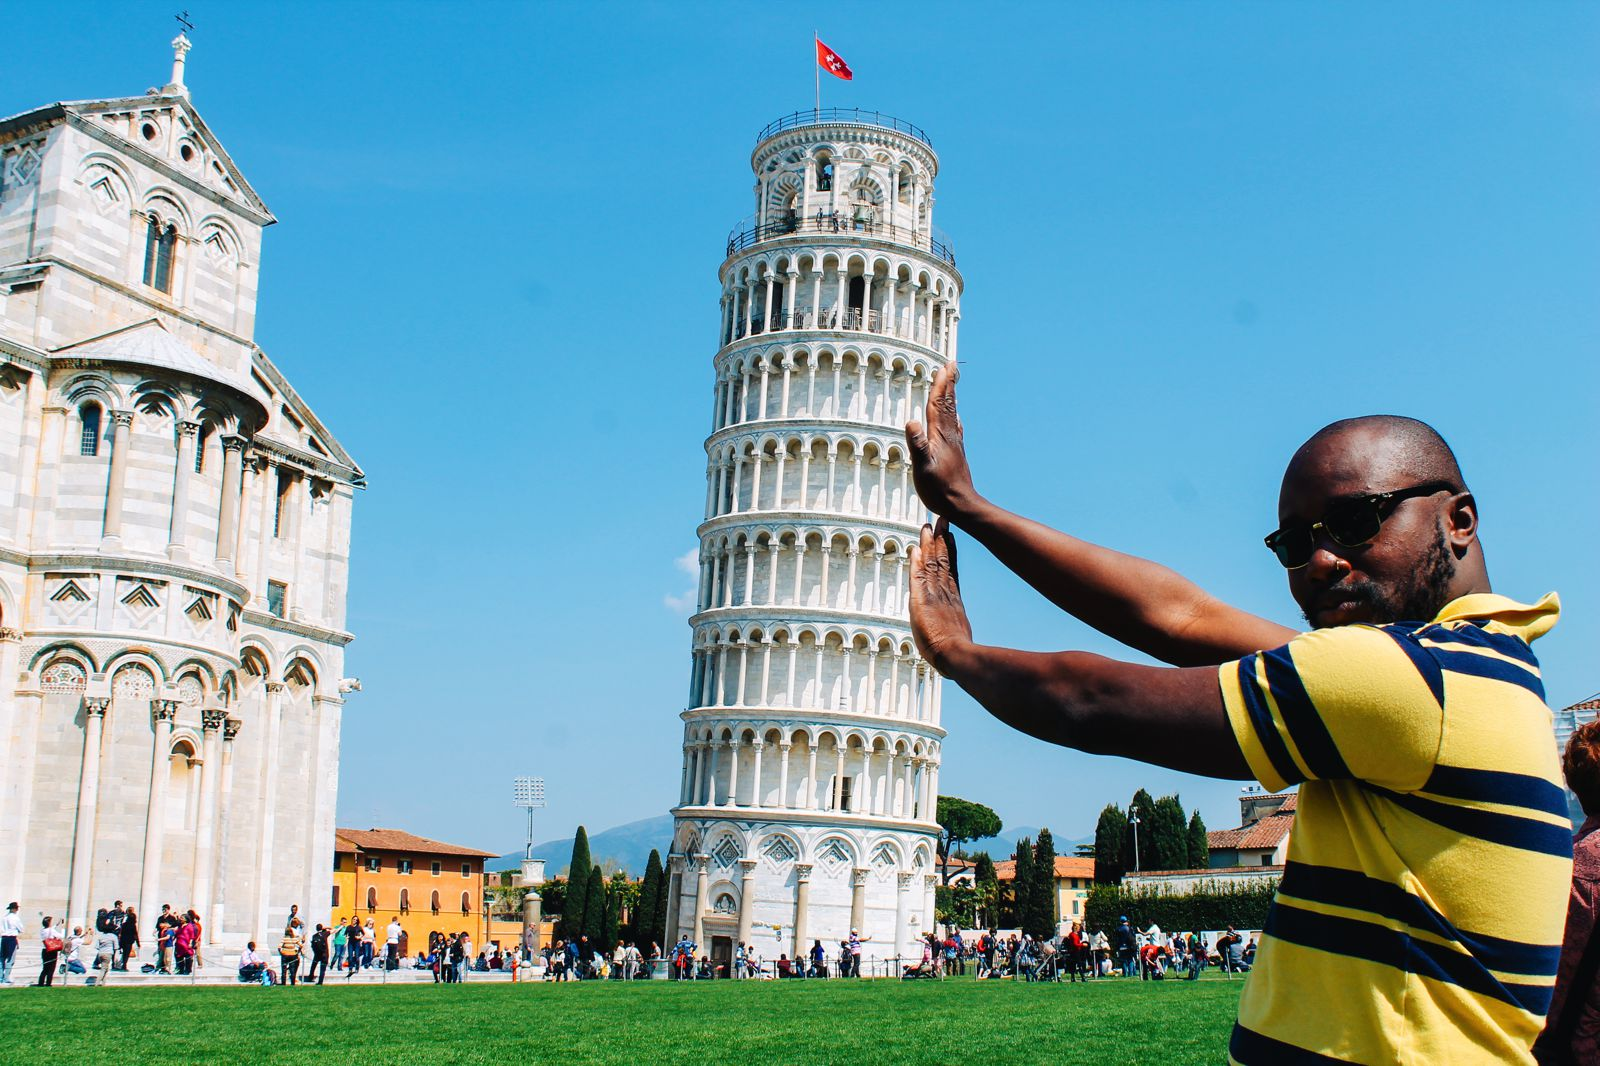 Thinking Of Visiting Pisa? Here Are 10 Things You Need To Know Before You Visit Pisa, Italy! (4)